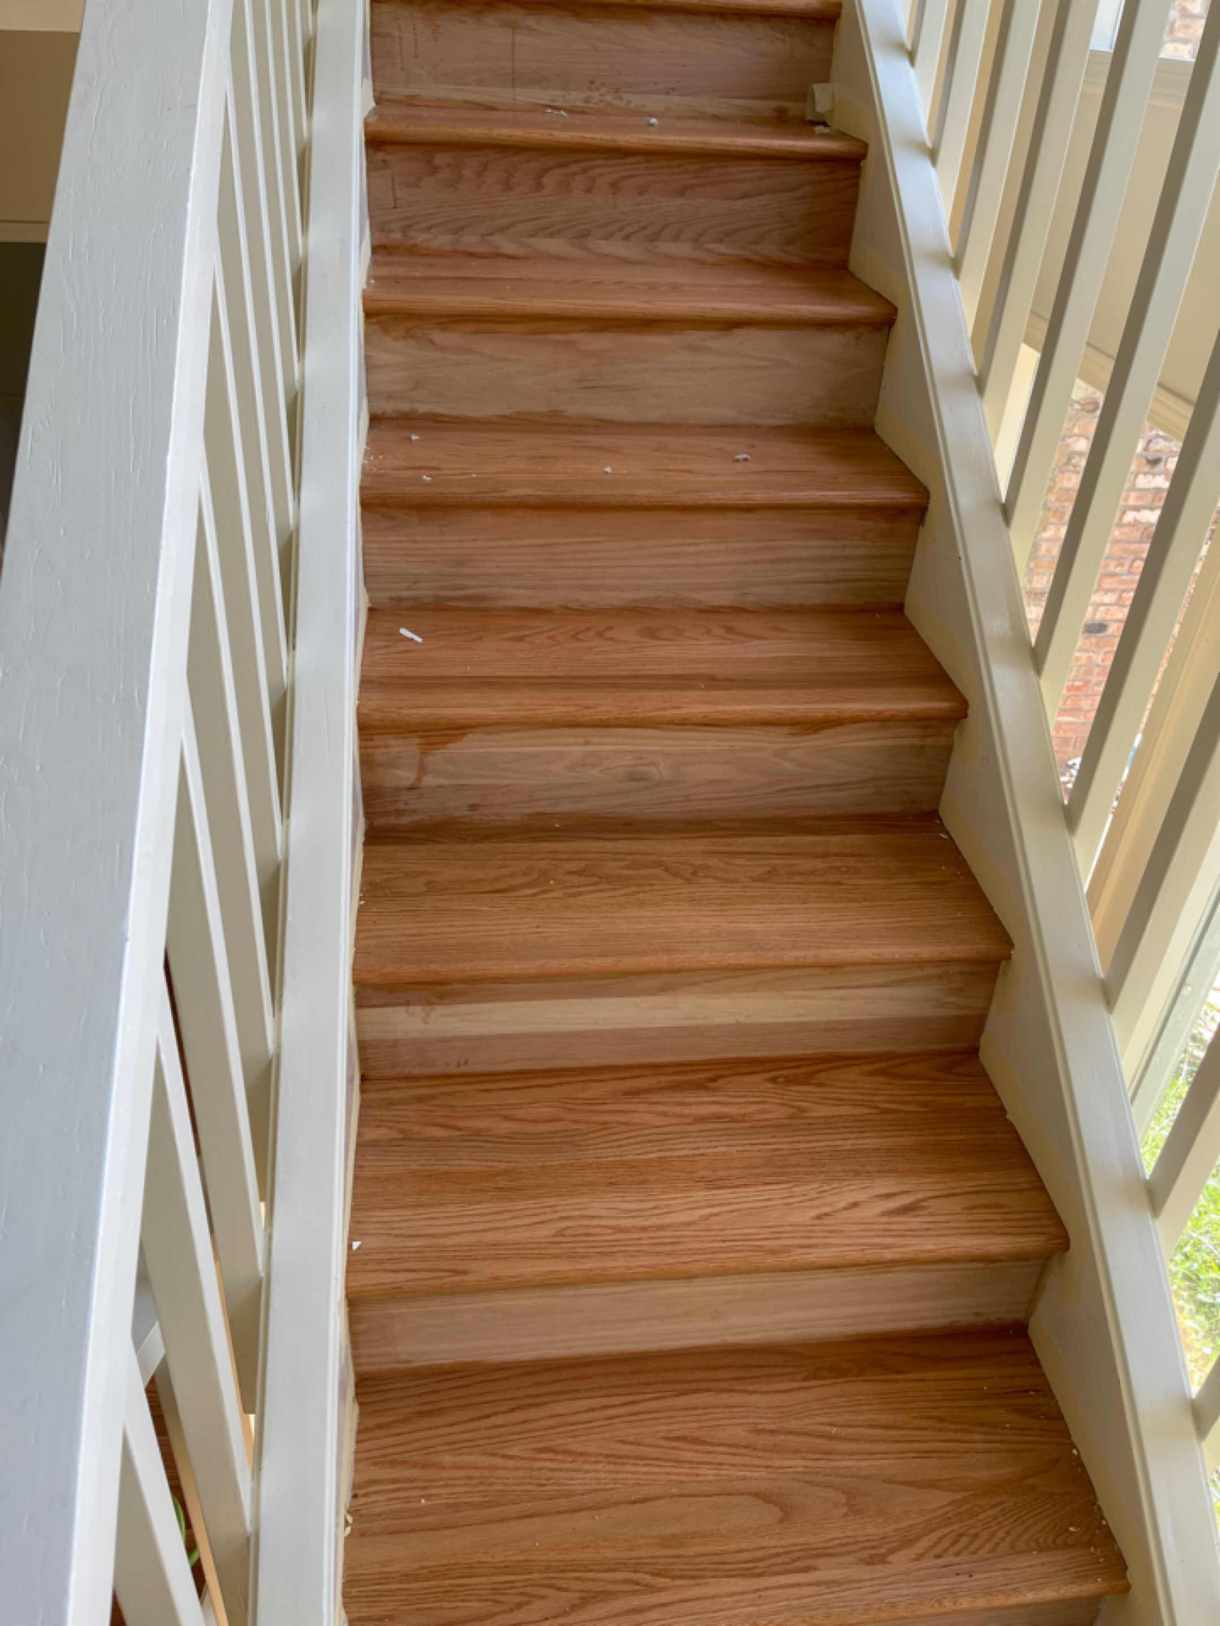 Install, stain, finish stair tread's and risers at client's home.